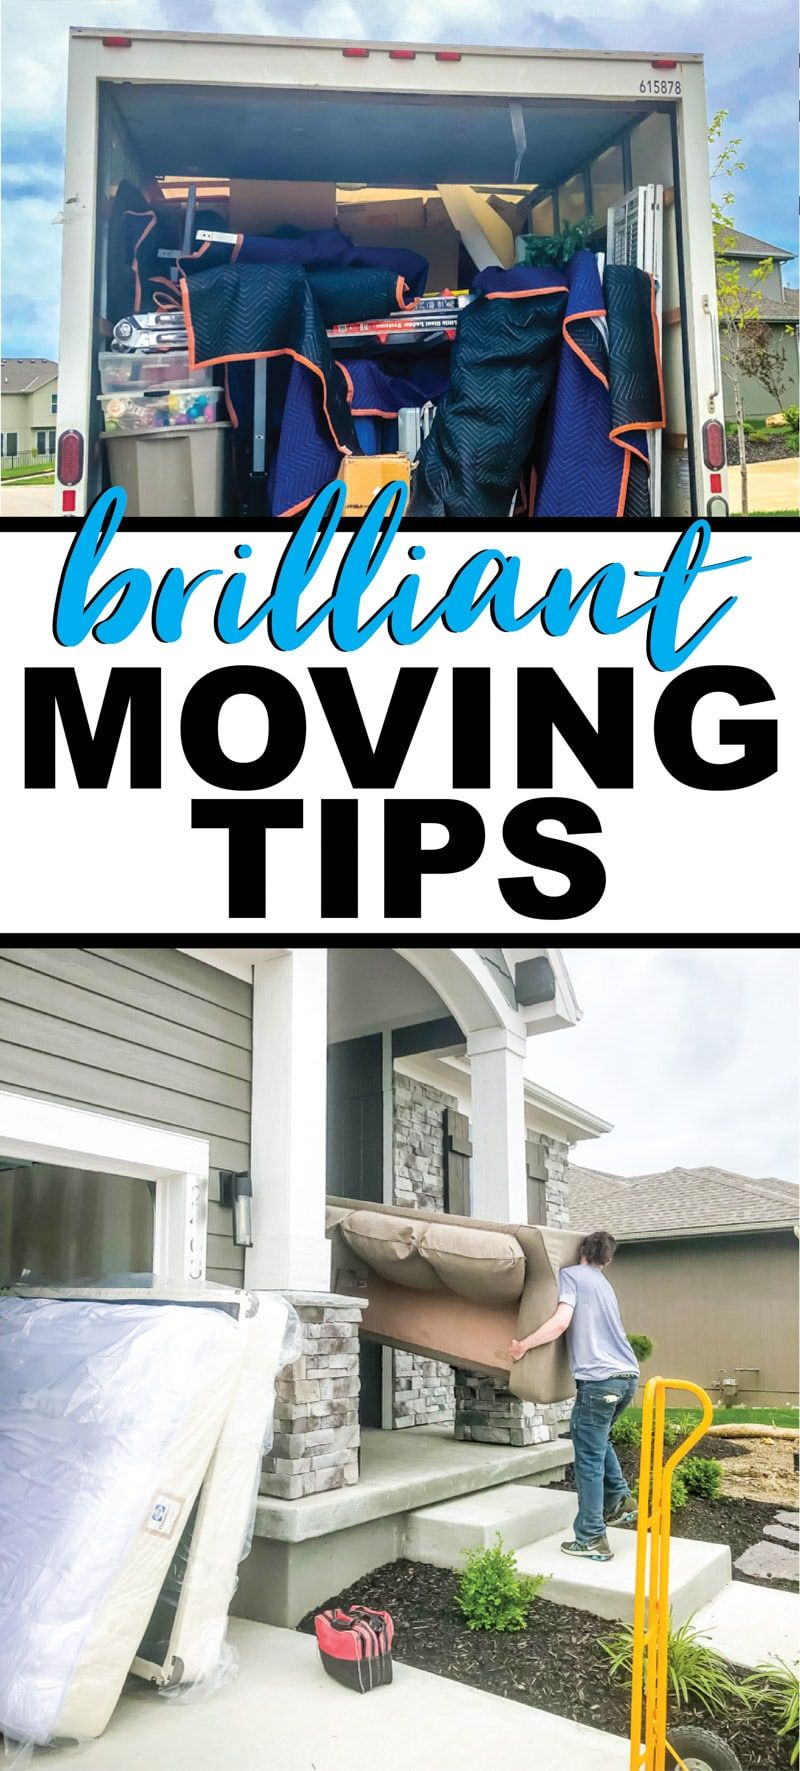 26 Brilliant Moving Tips and Tricks